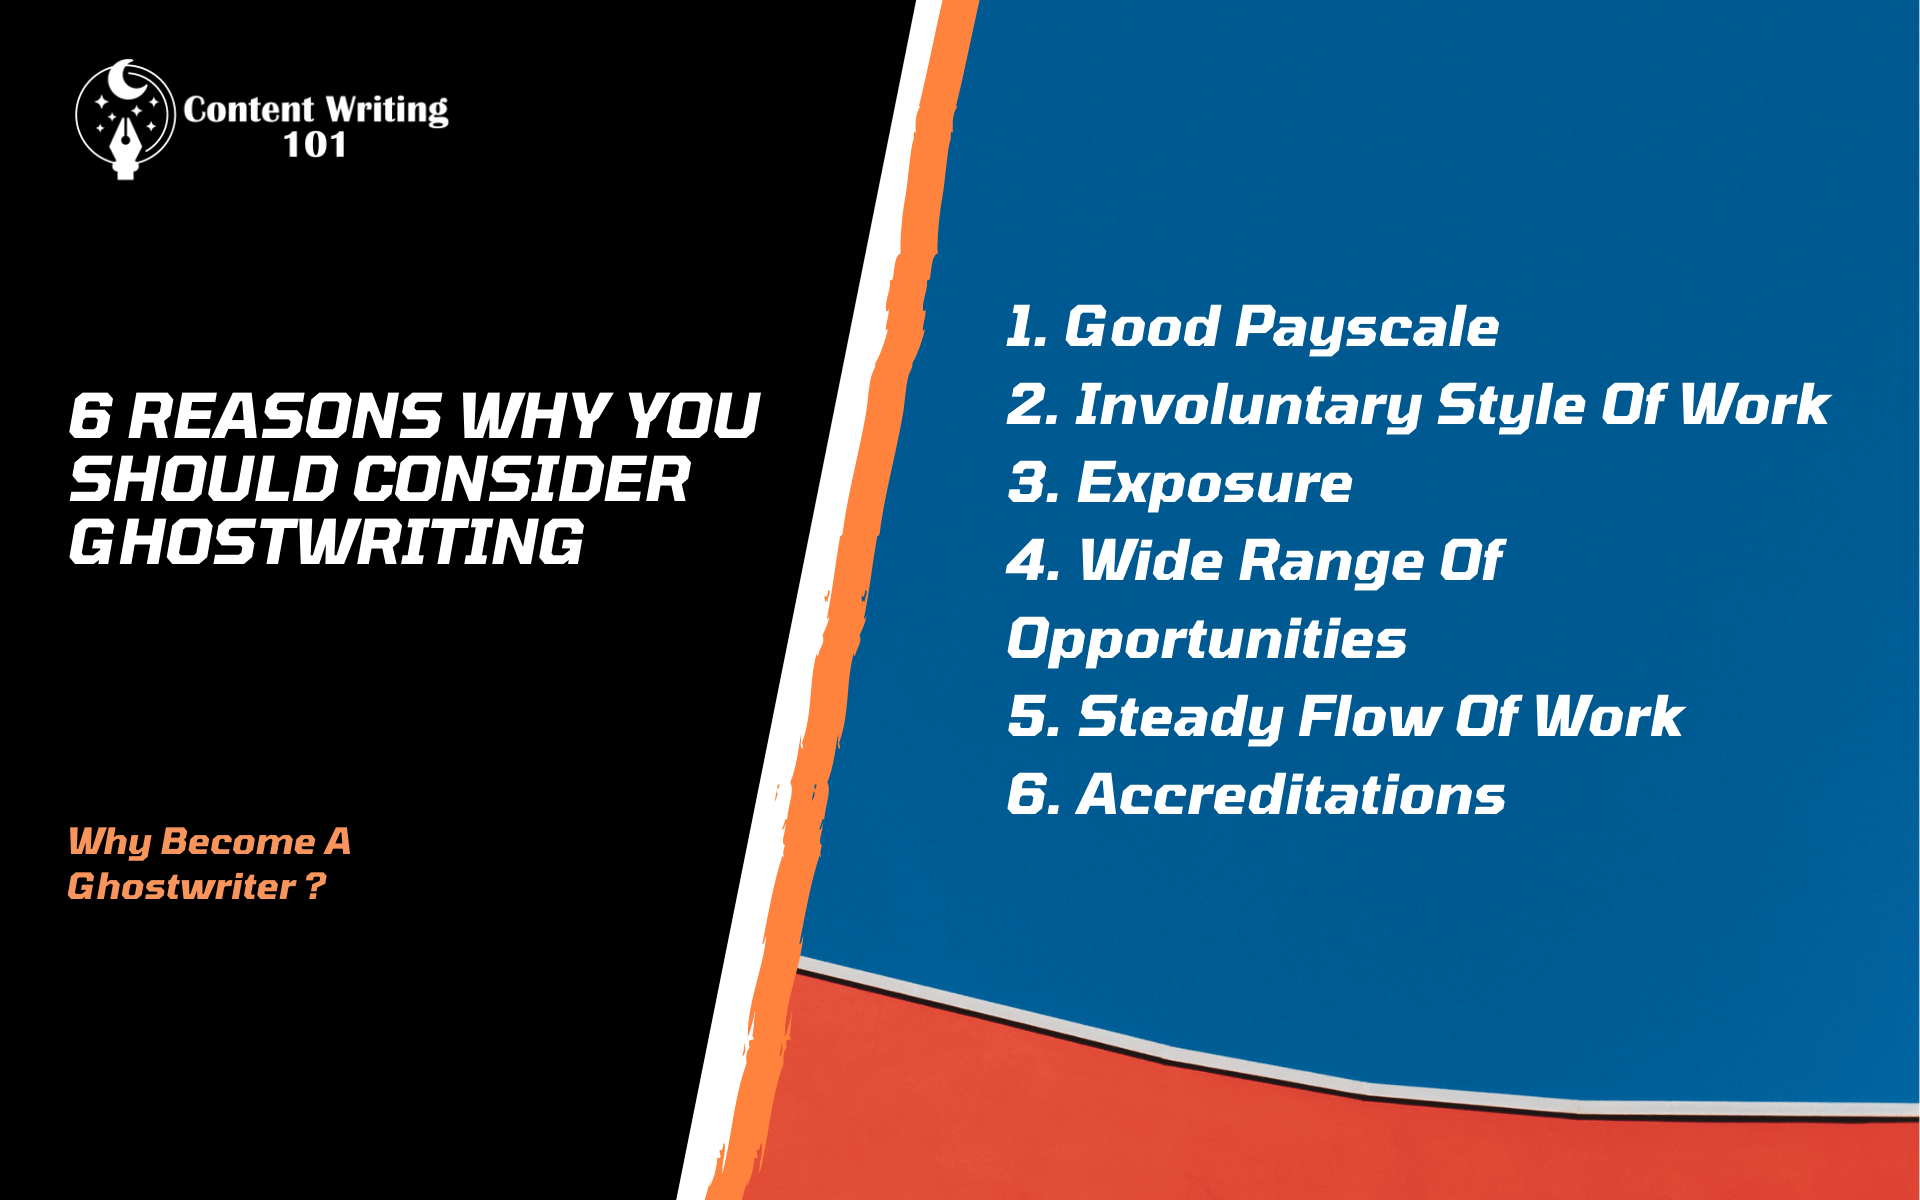 Why become a ghostwriter?